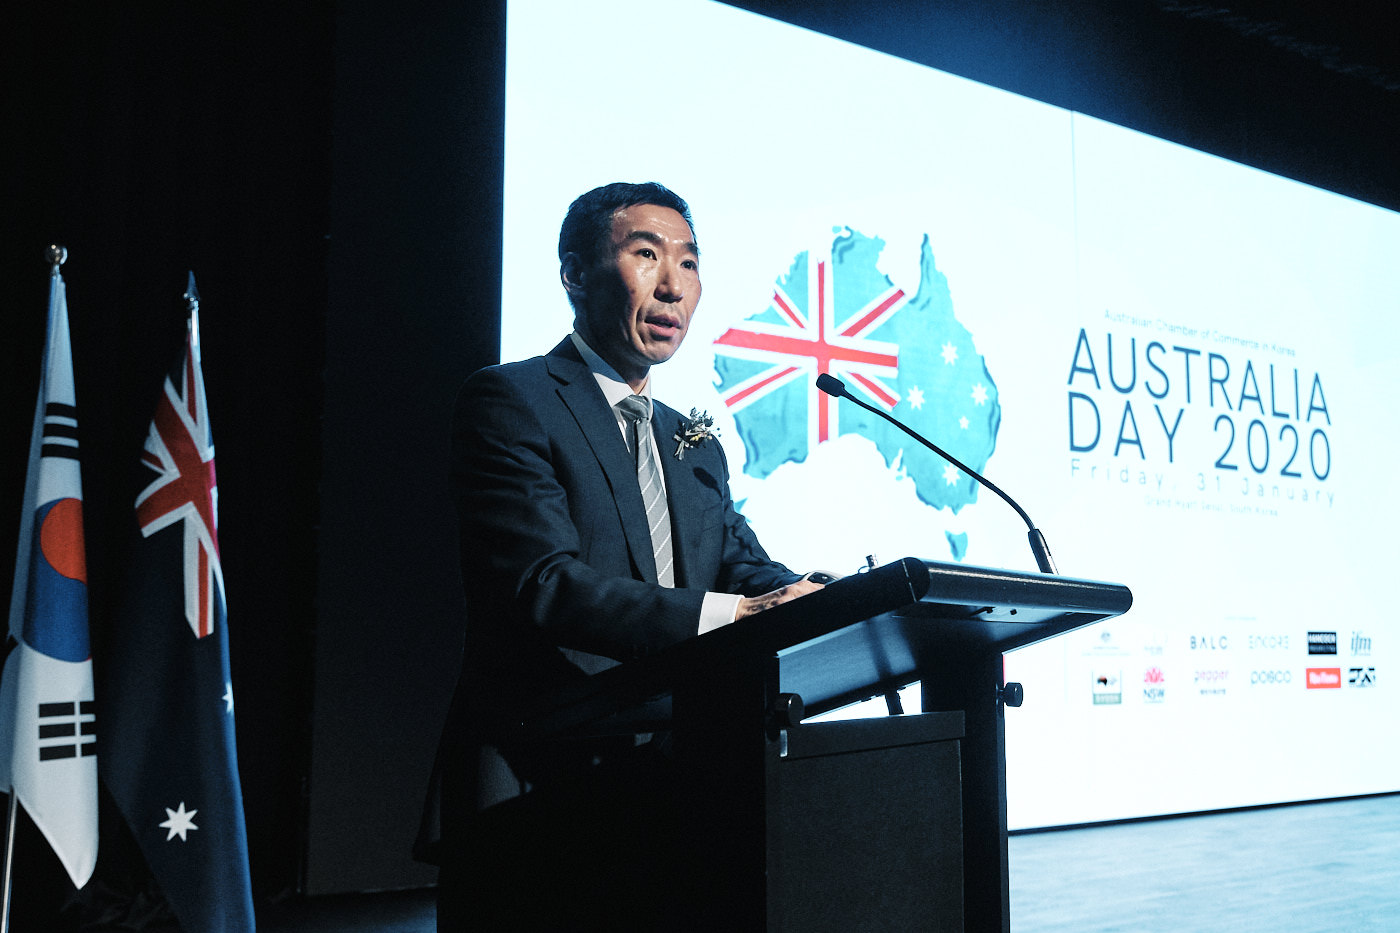 Australia Day in Seoul 2020 - Event Photographer